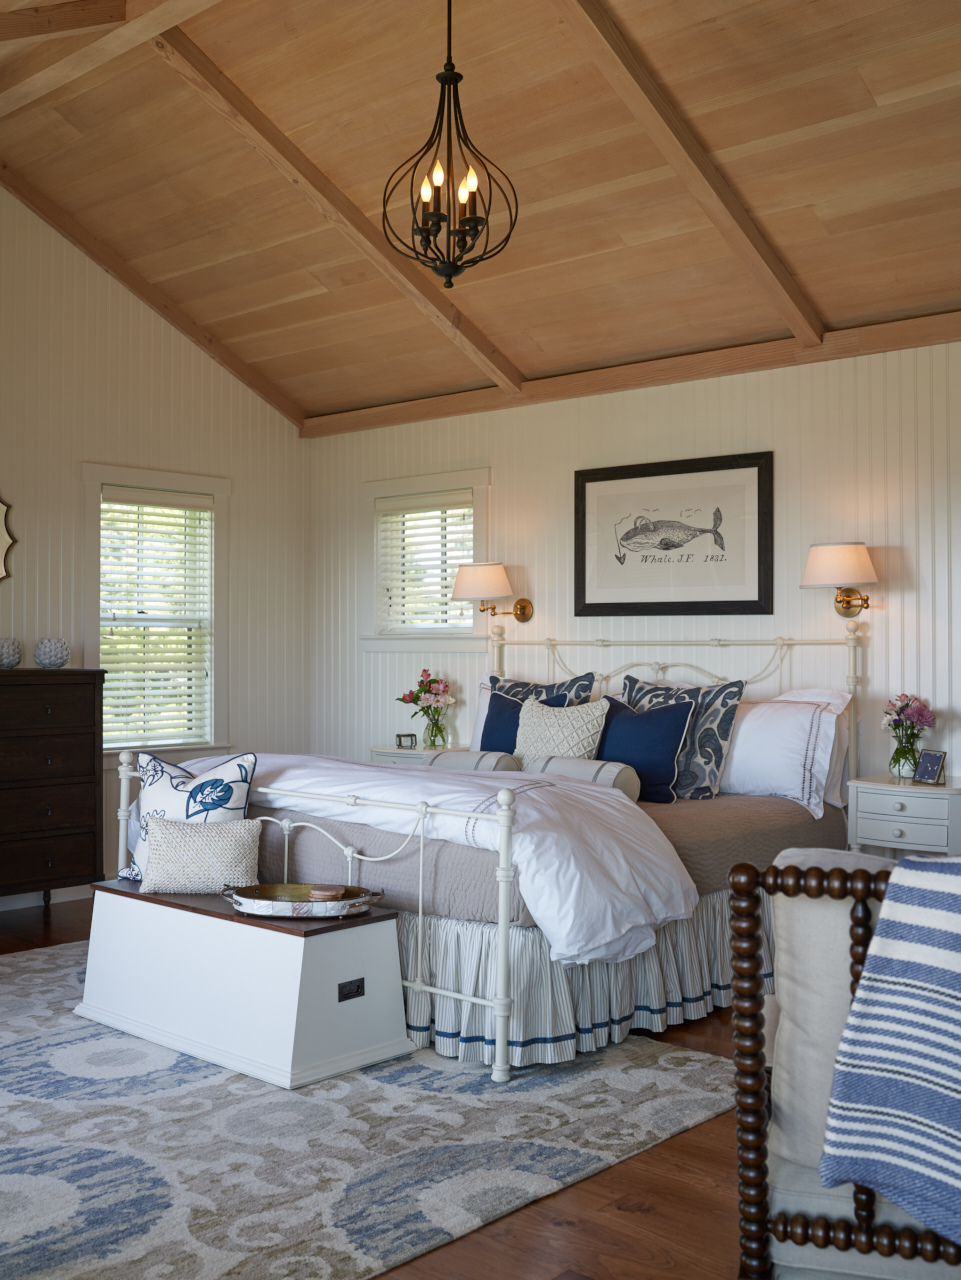 Town Landing Cottage bedroom.jpg